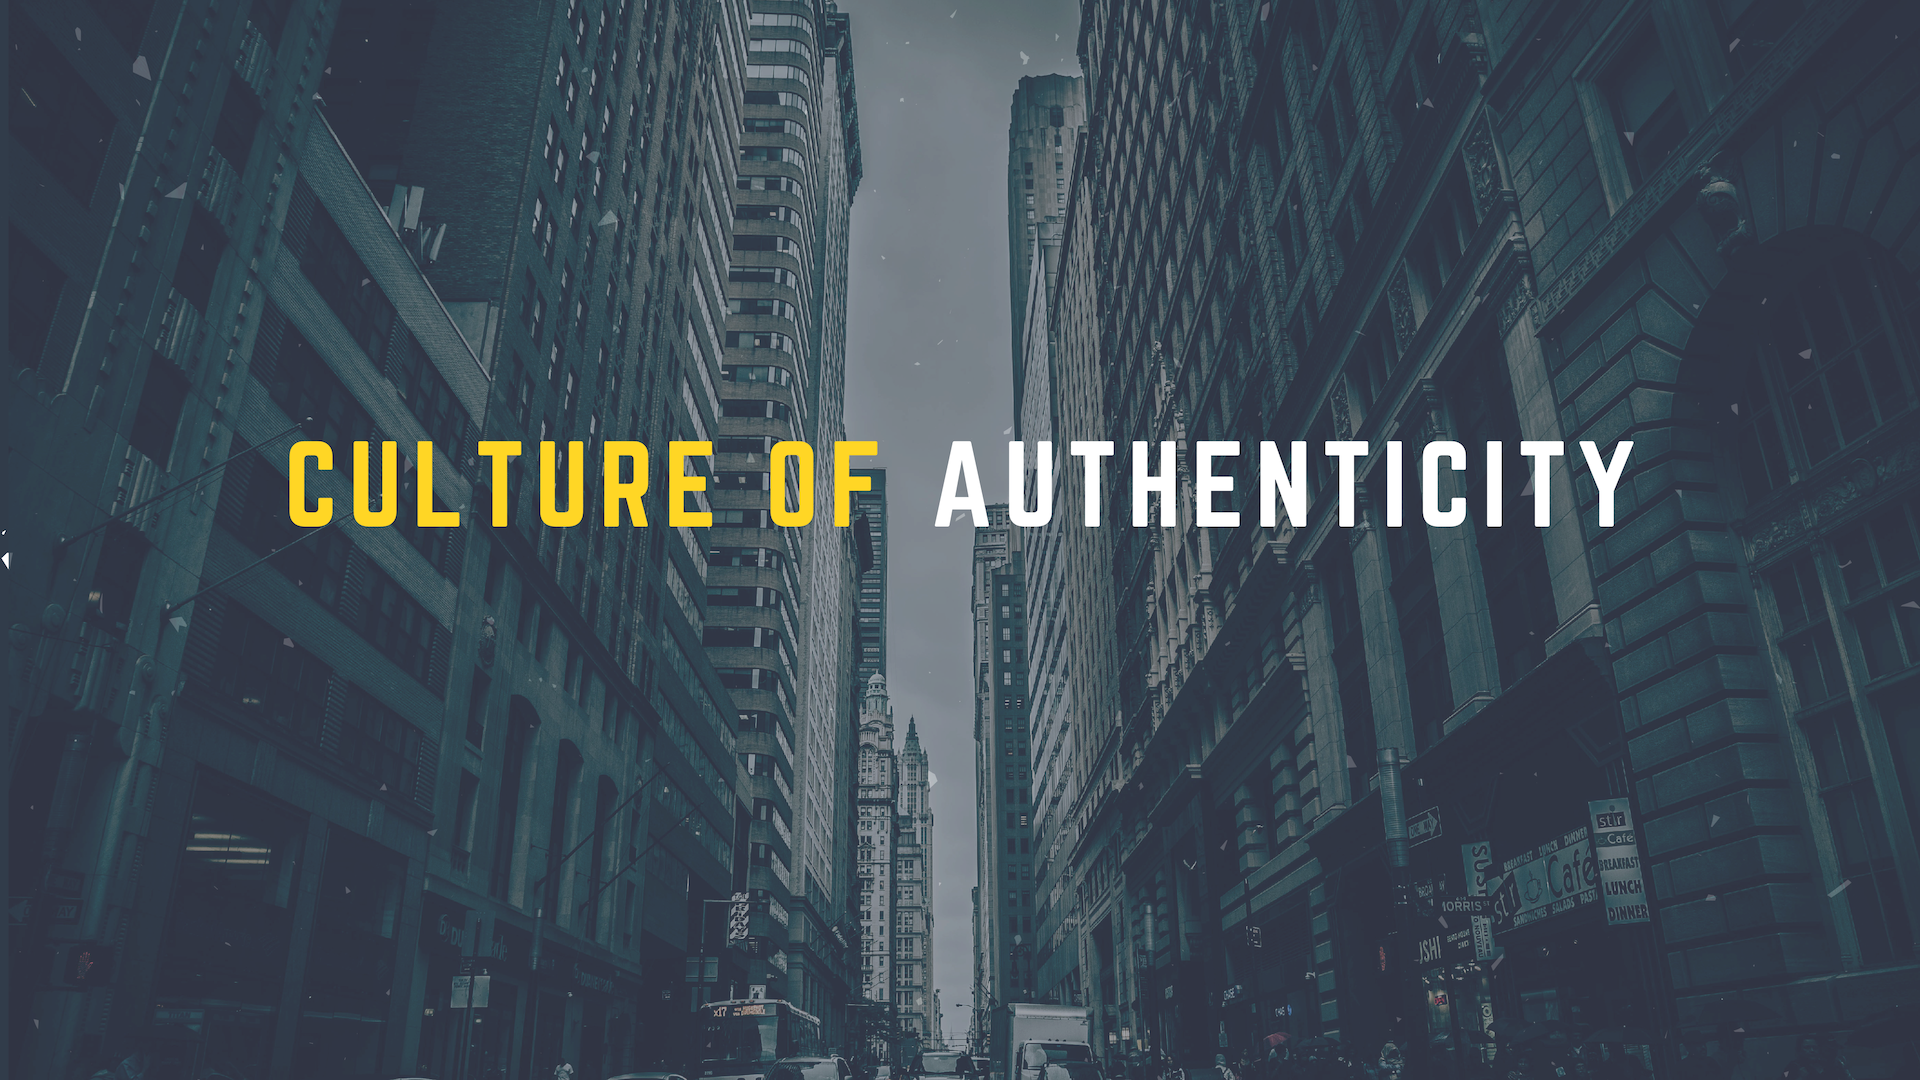 Culture of Authenticity